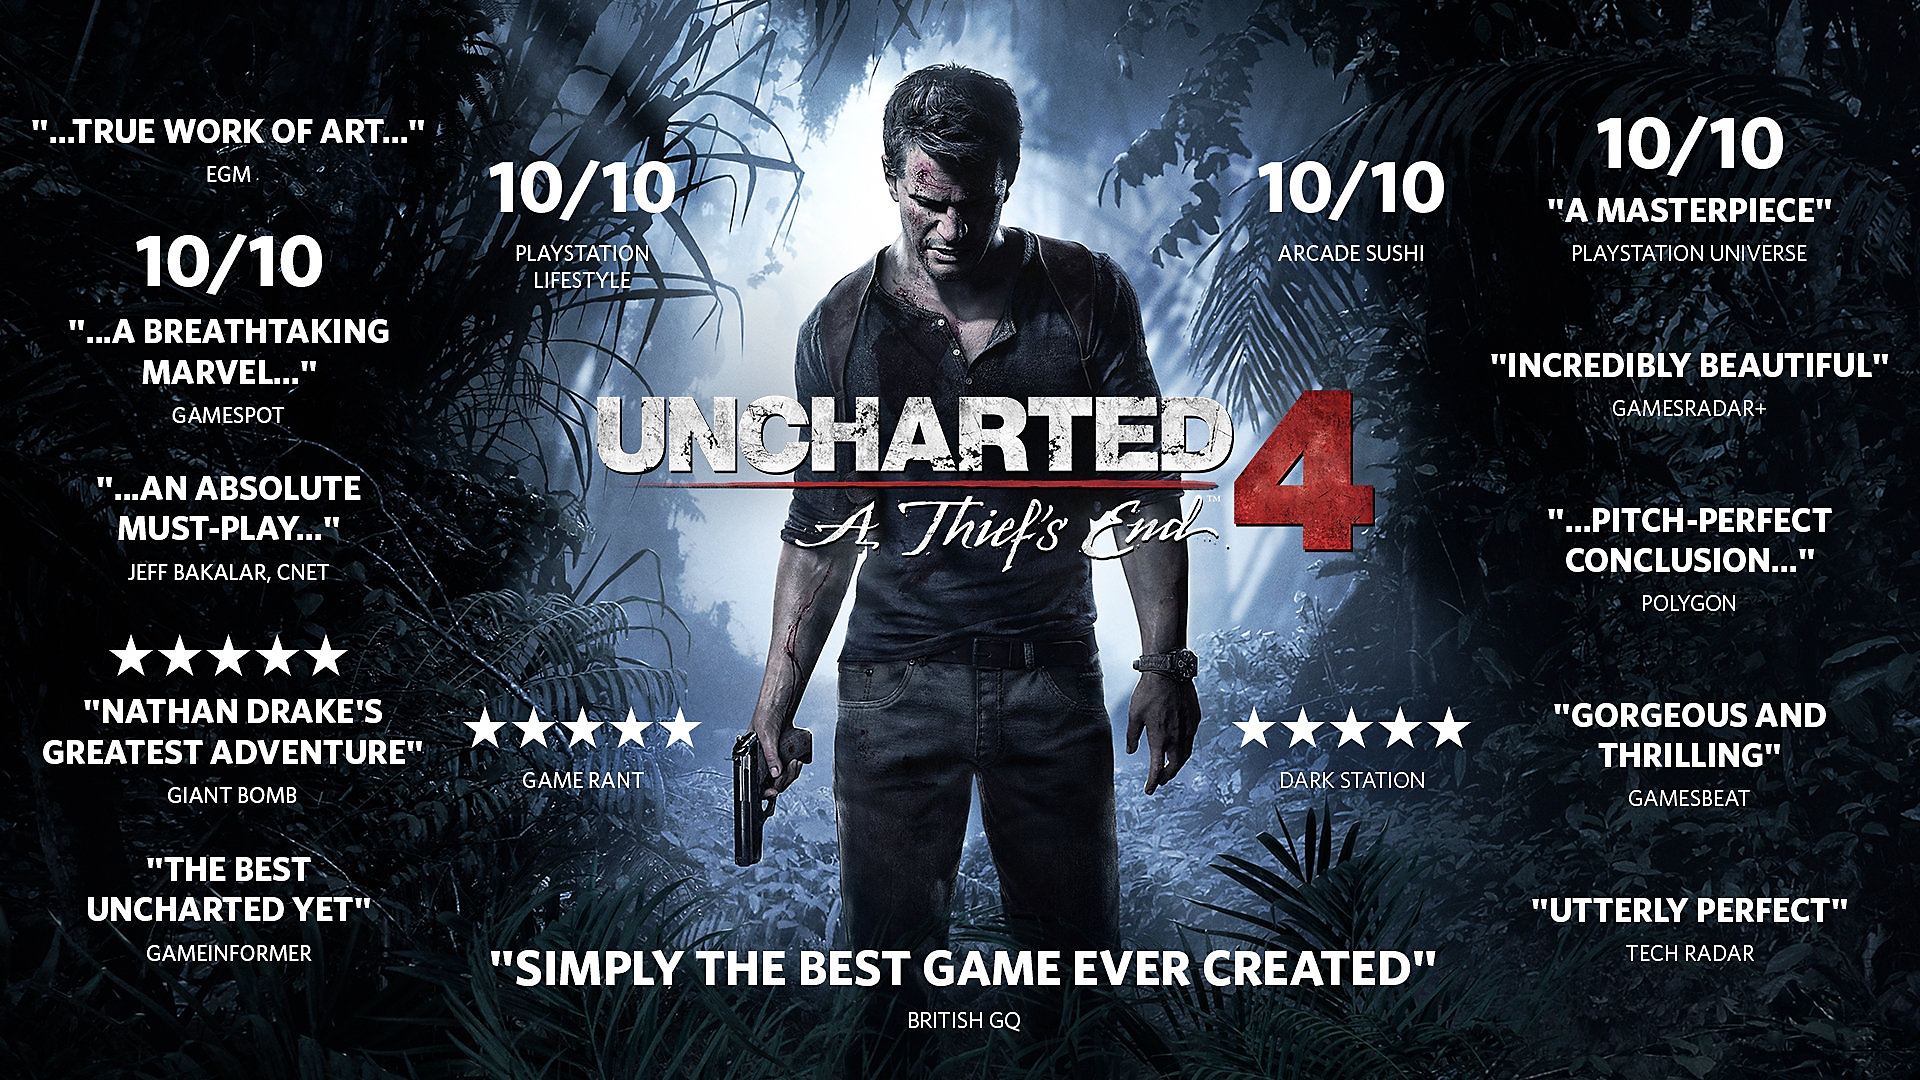 تقديرات uncharted a thief's end